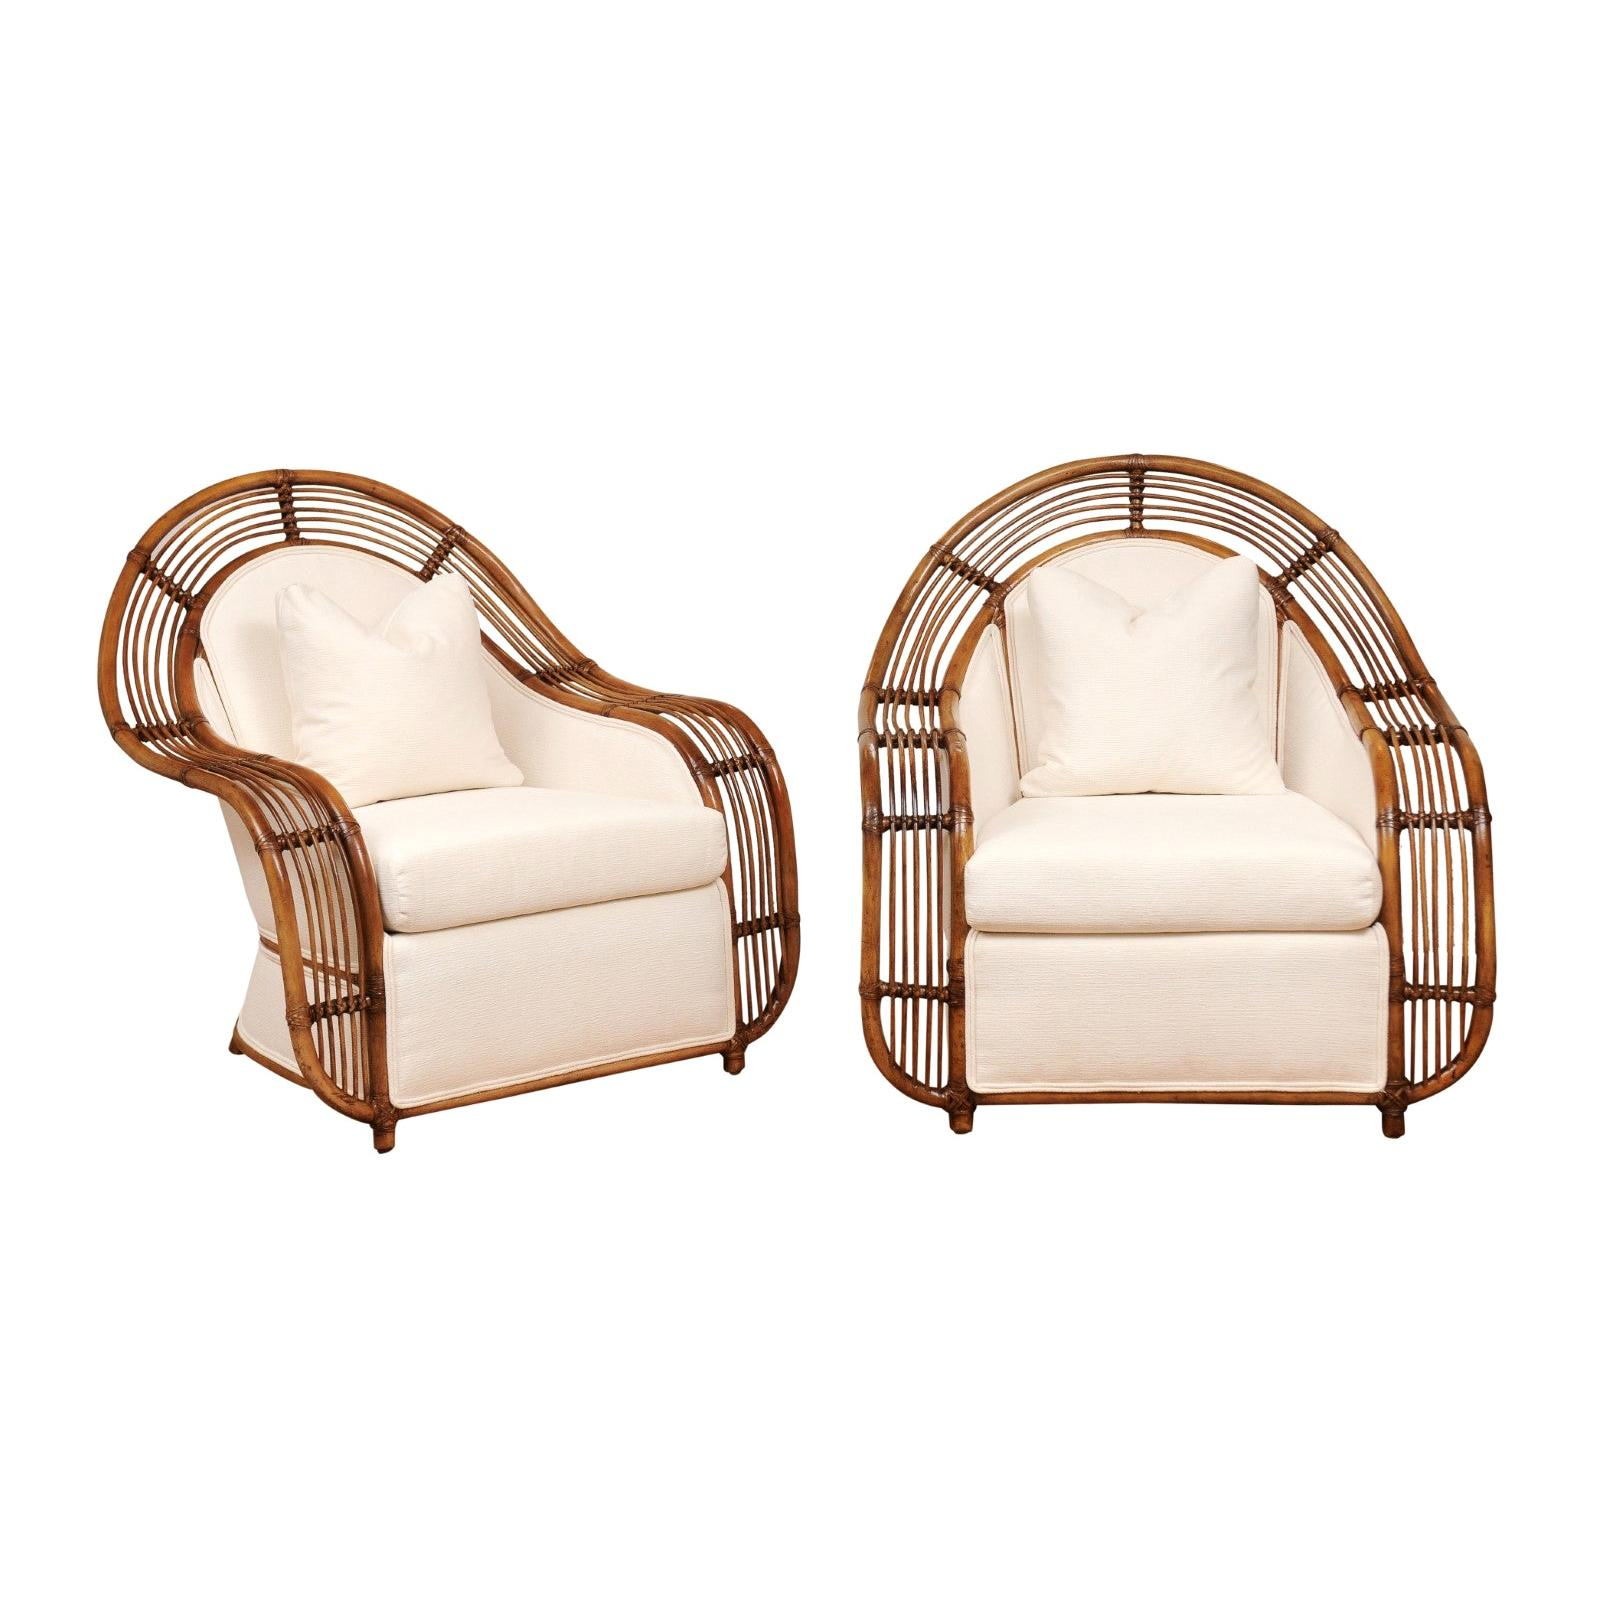 Majestic Restored Pair of Breille Club Chairs by Henry Olko, circa 1980